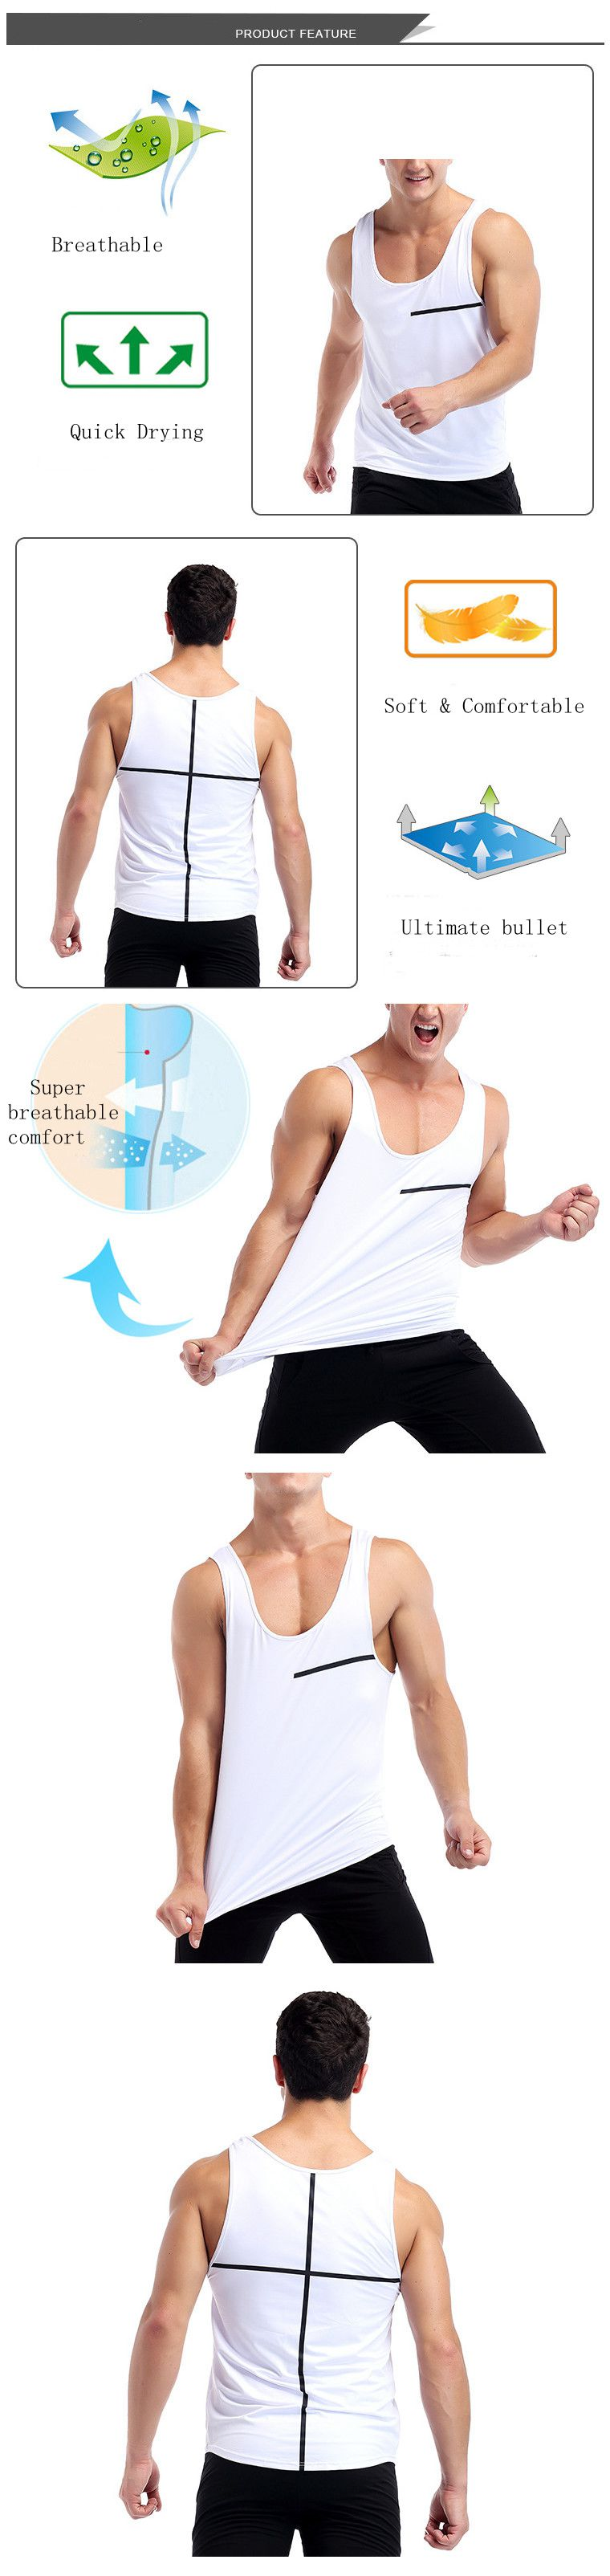 White Quick Drying Line Printed Tight Fitness Sleeveless T-shirt Men's Running Training Sport Vest